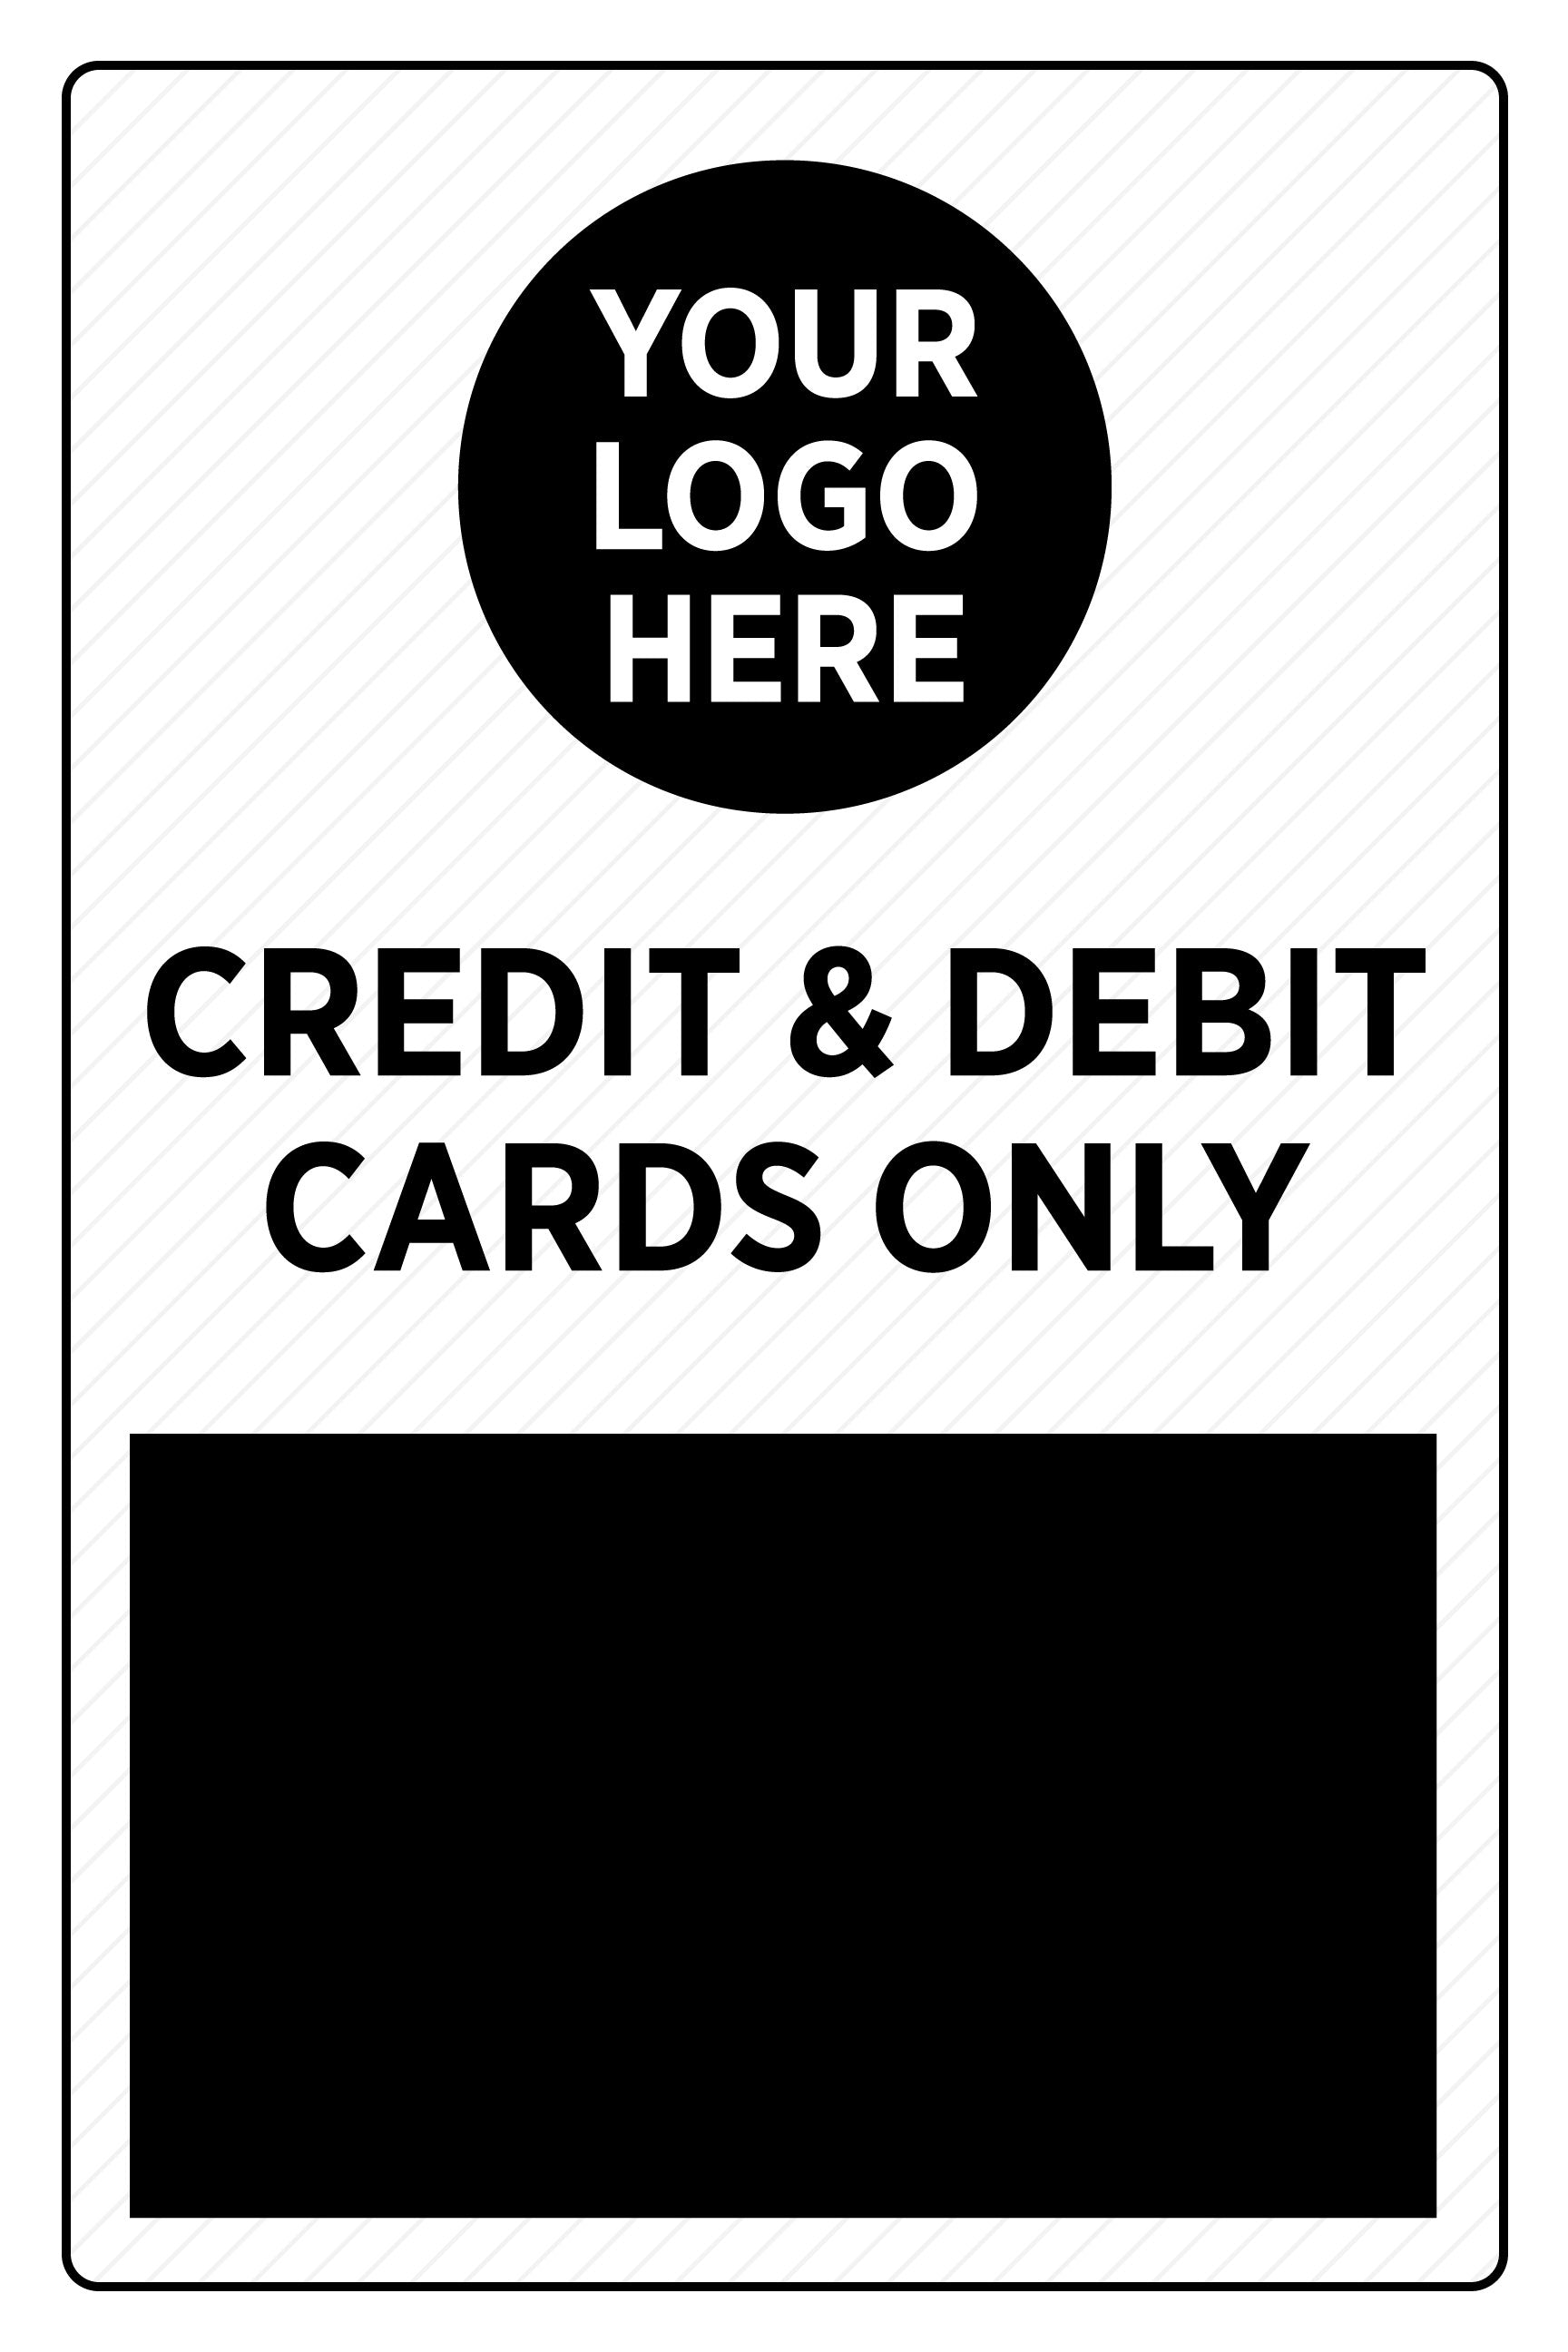 Credit & Debit Cards Only - Deluxe